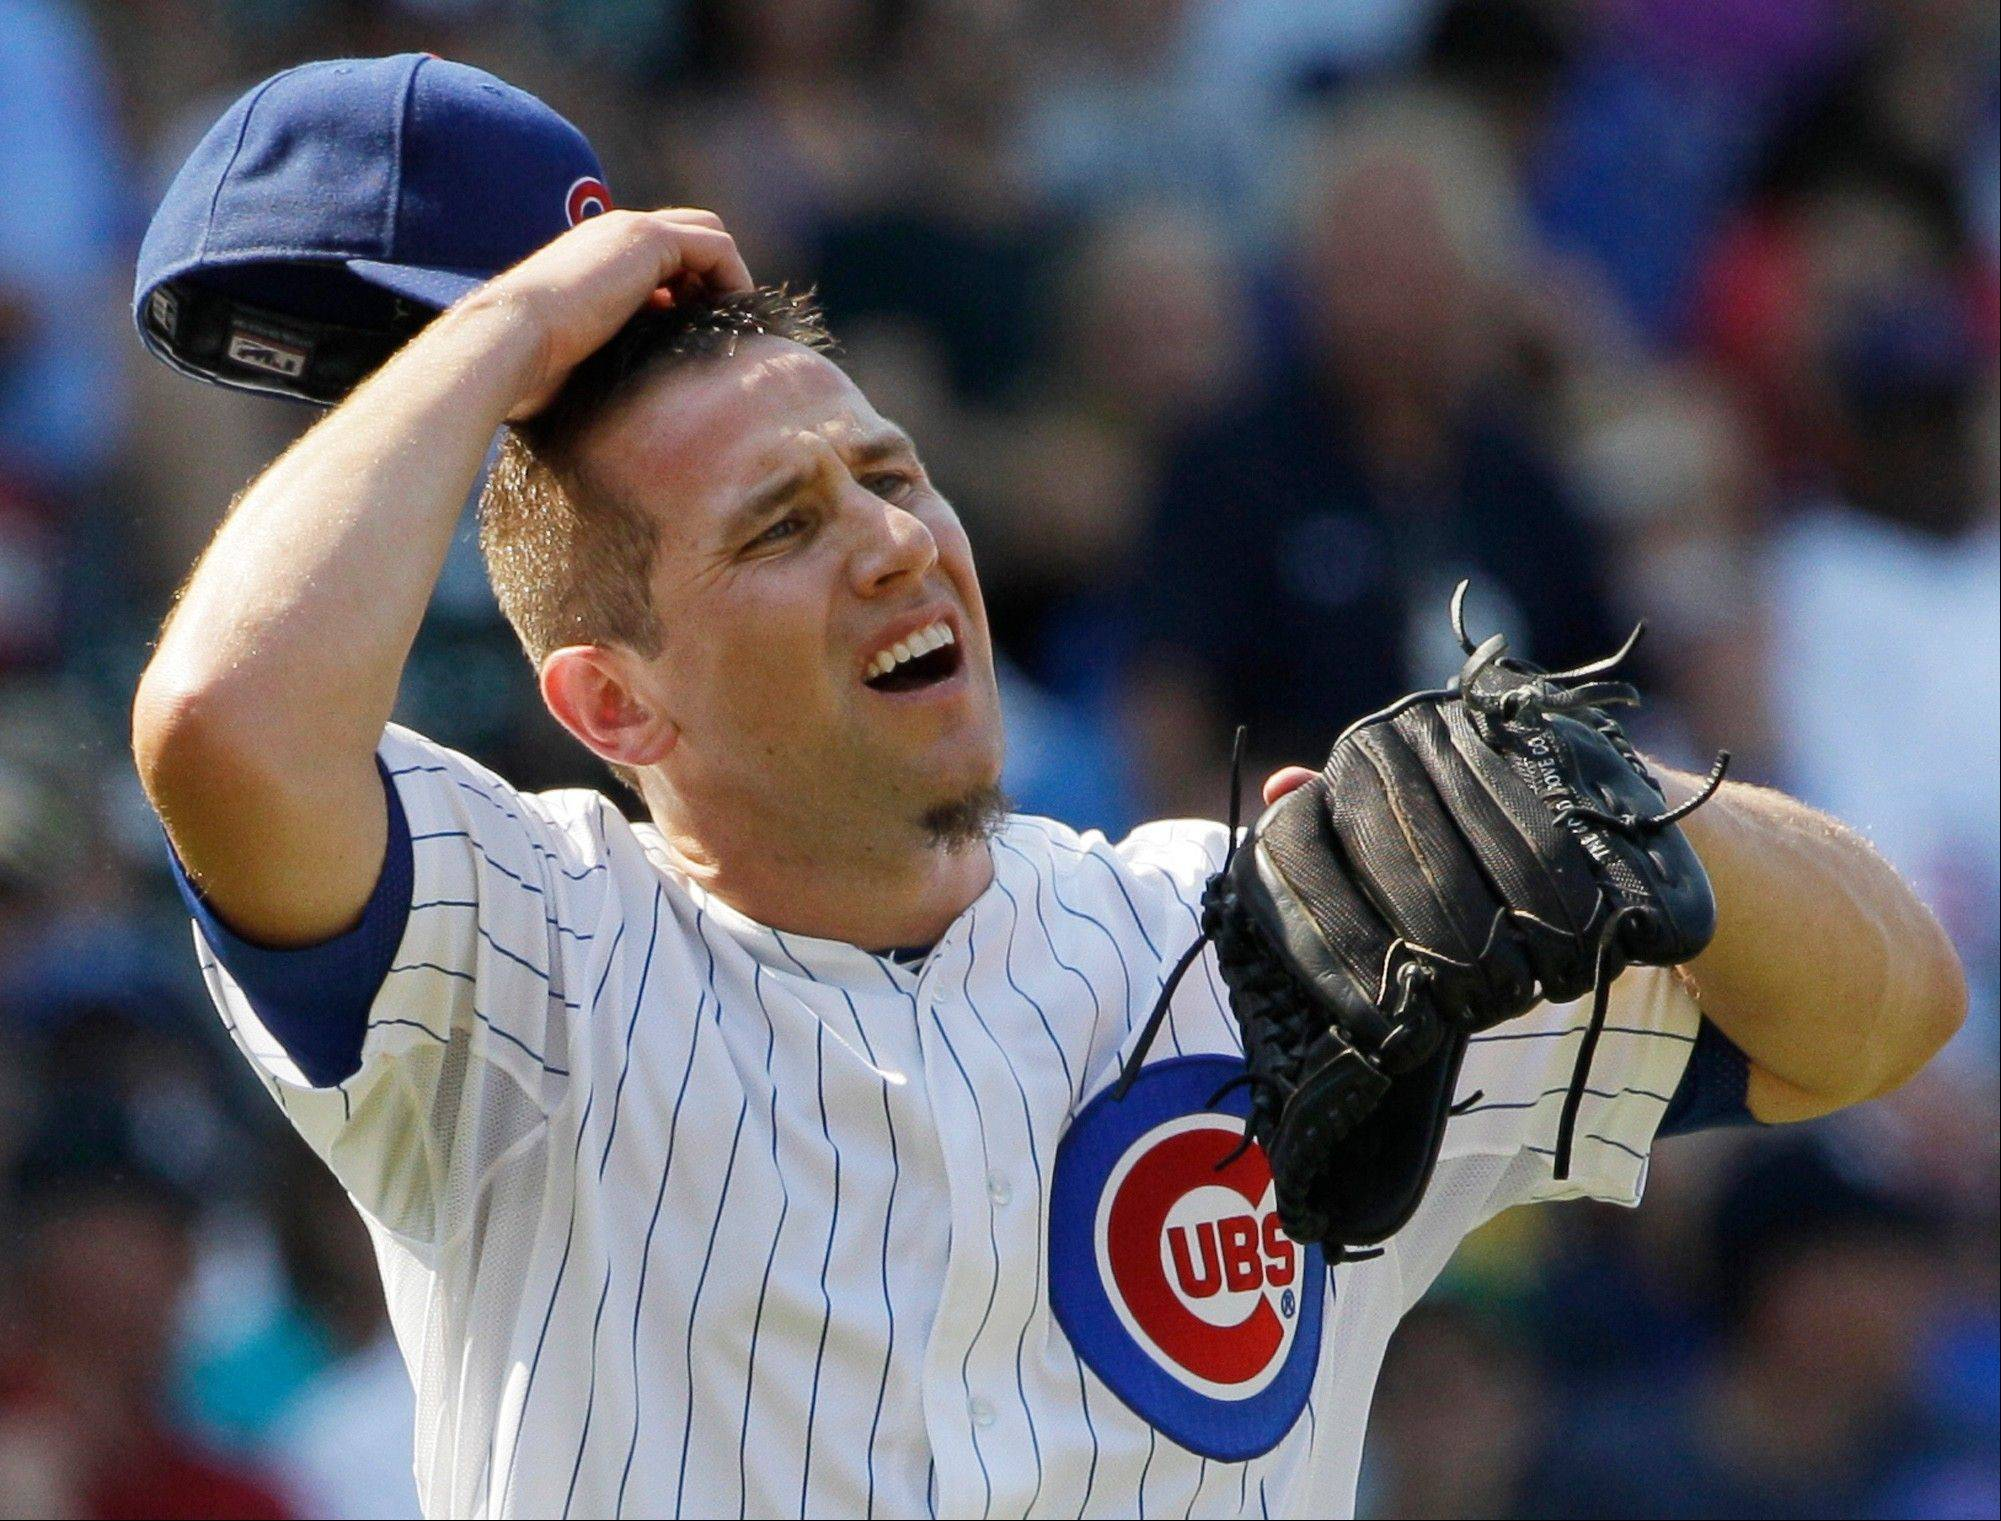 Cubs relief pitcher Shawn Camp carried a big load for the Cubs last season, appearing in 80 games. Opponents batted only .261 against him and he had a WHIP of 1.29. The Cubs re-signed Camp to a new one-year deal on Monday.